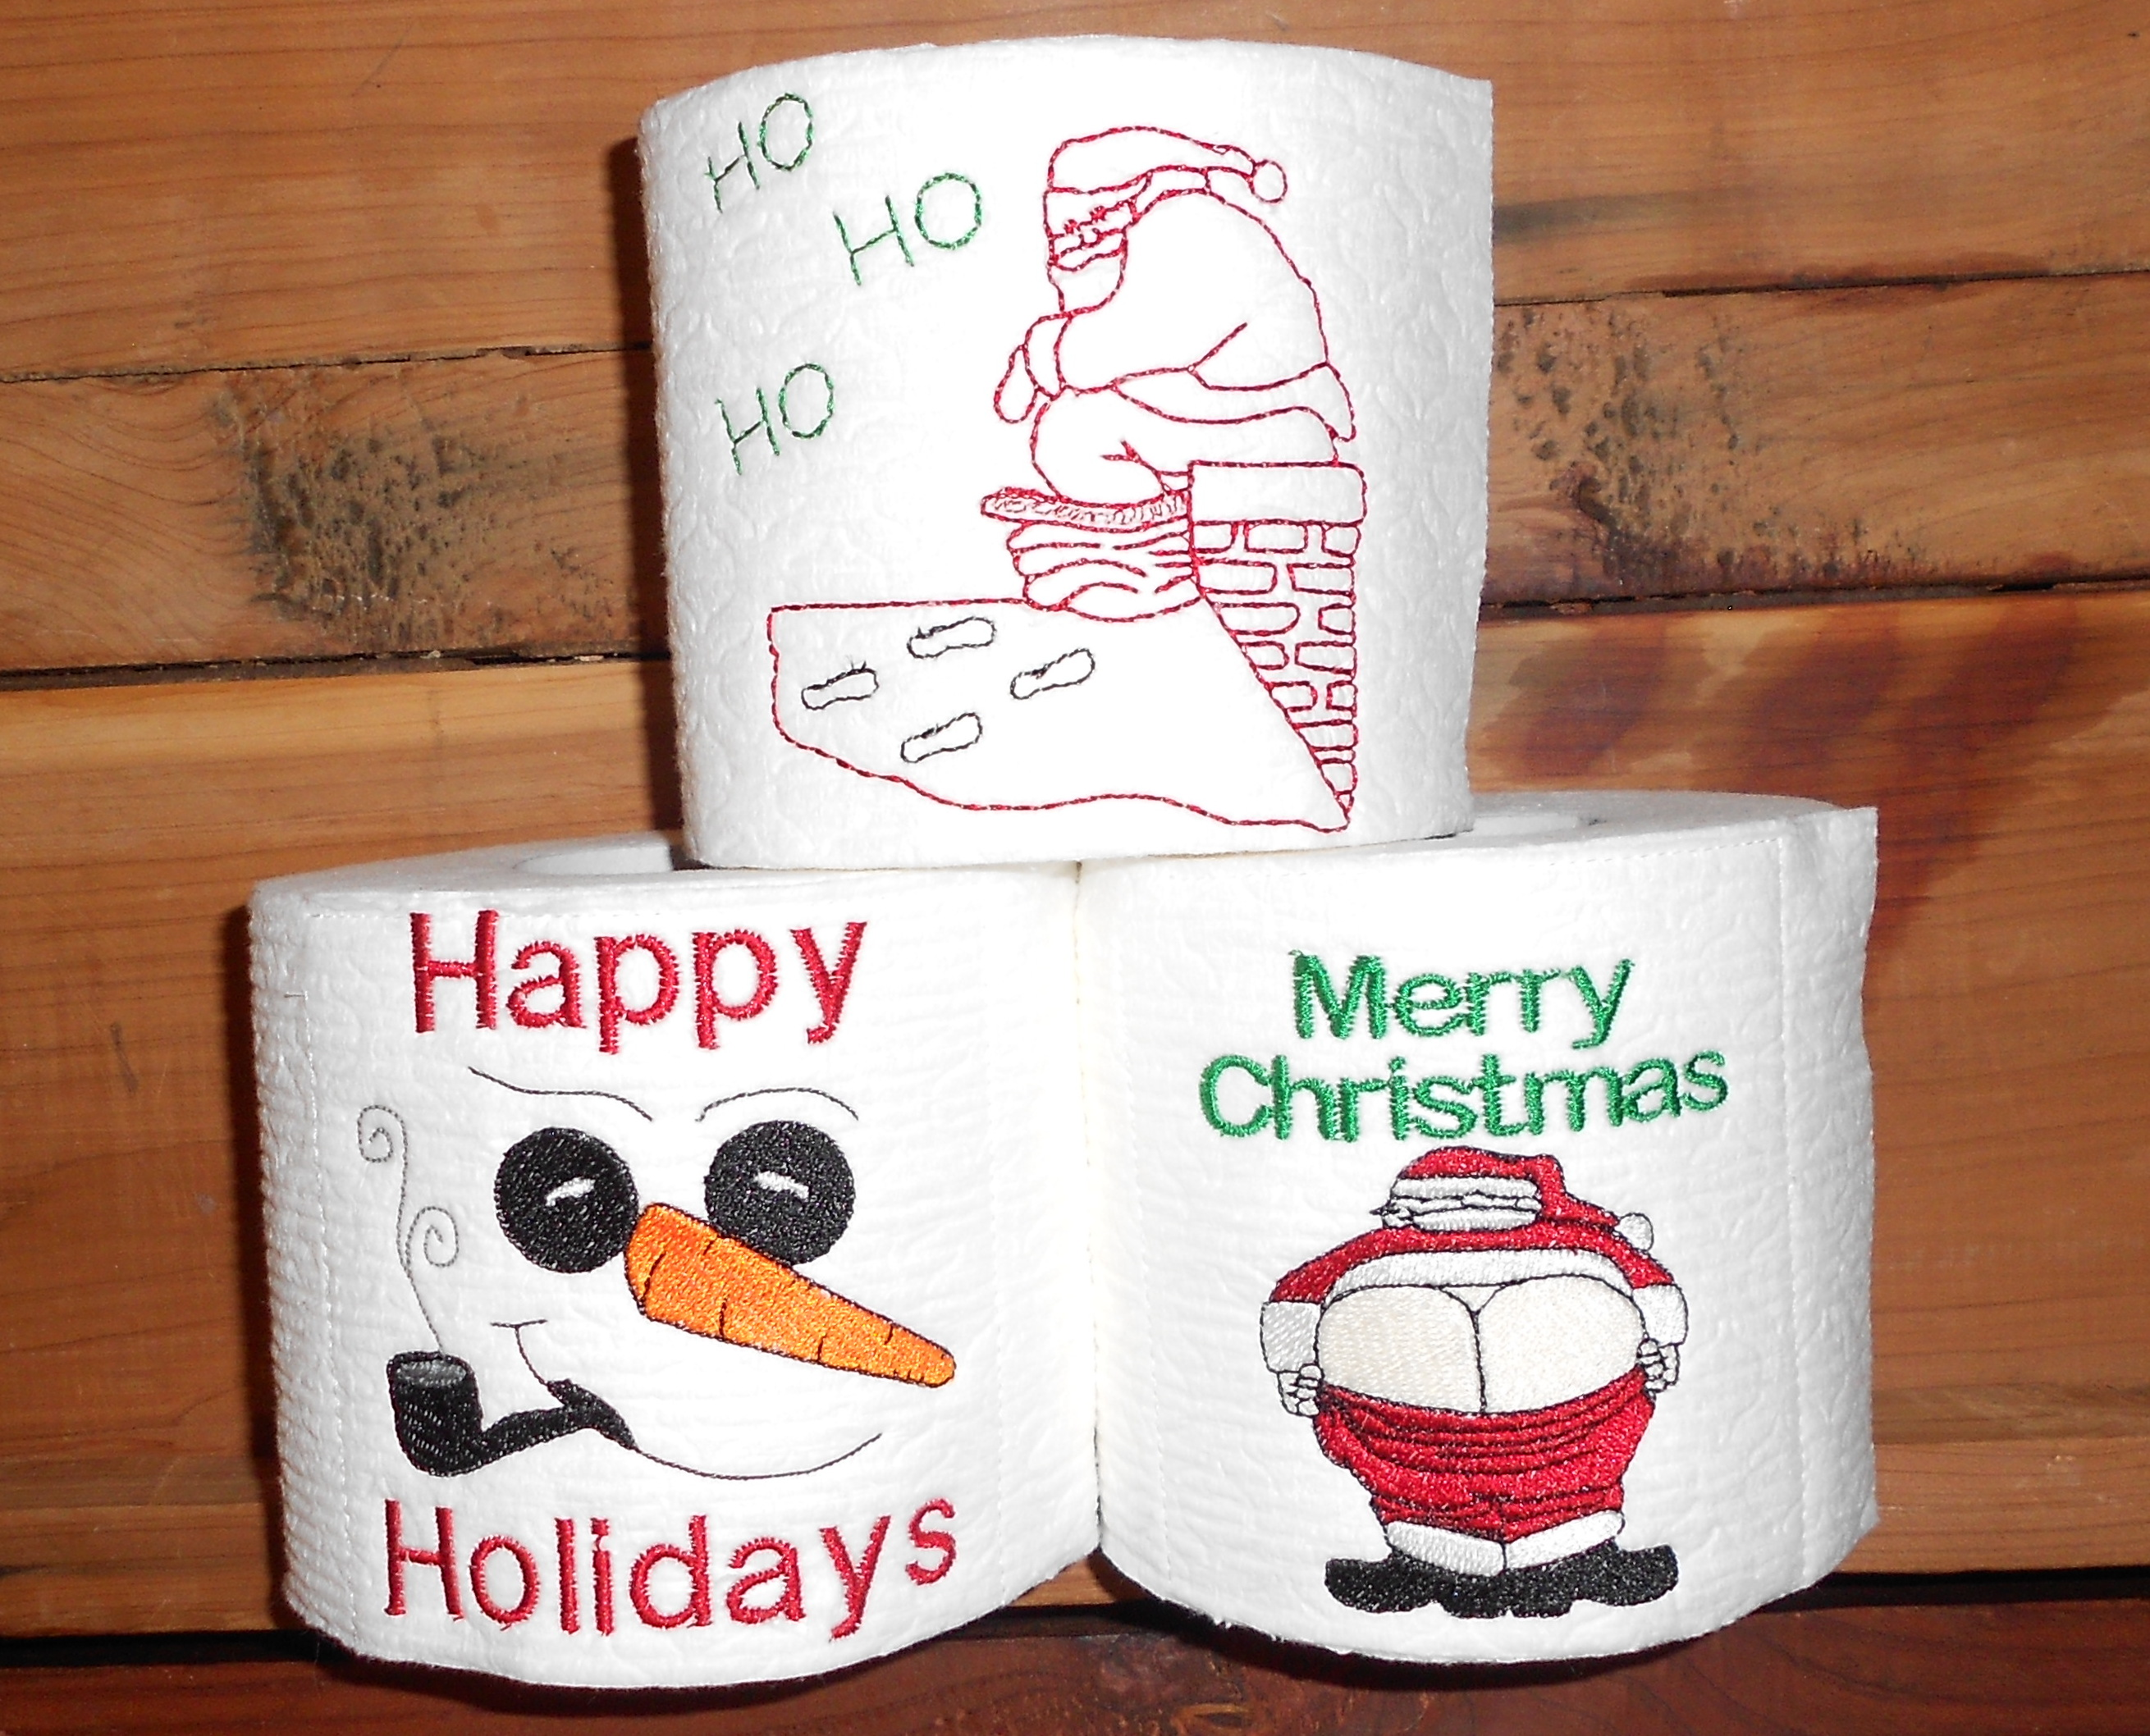 Embroidery designs for toilet paper - Three Designs